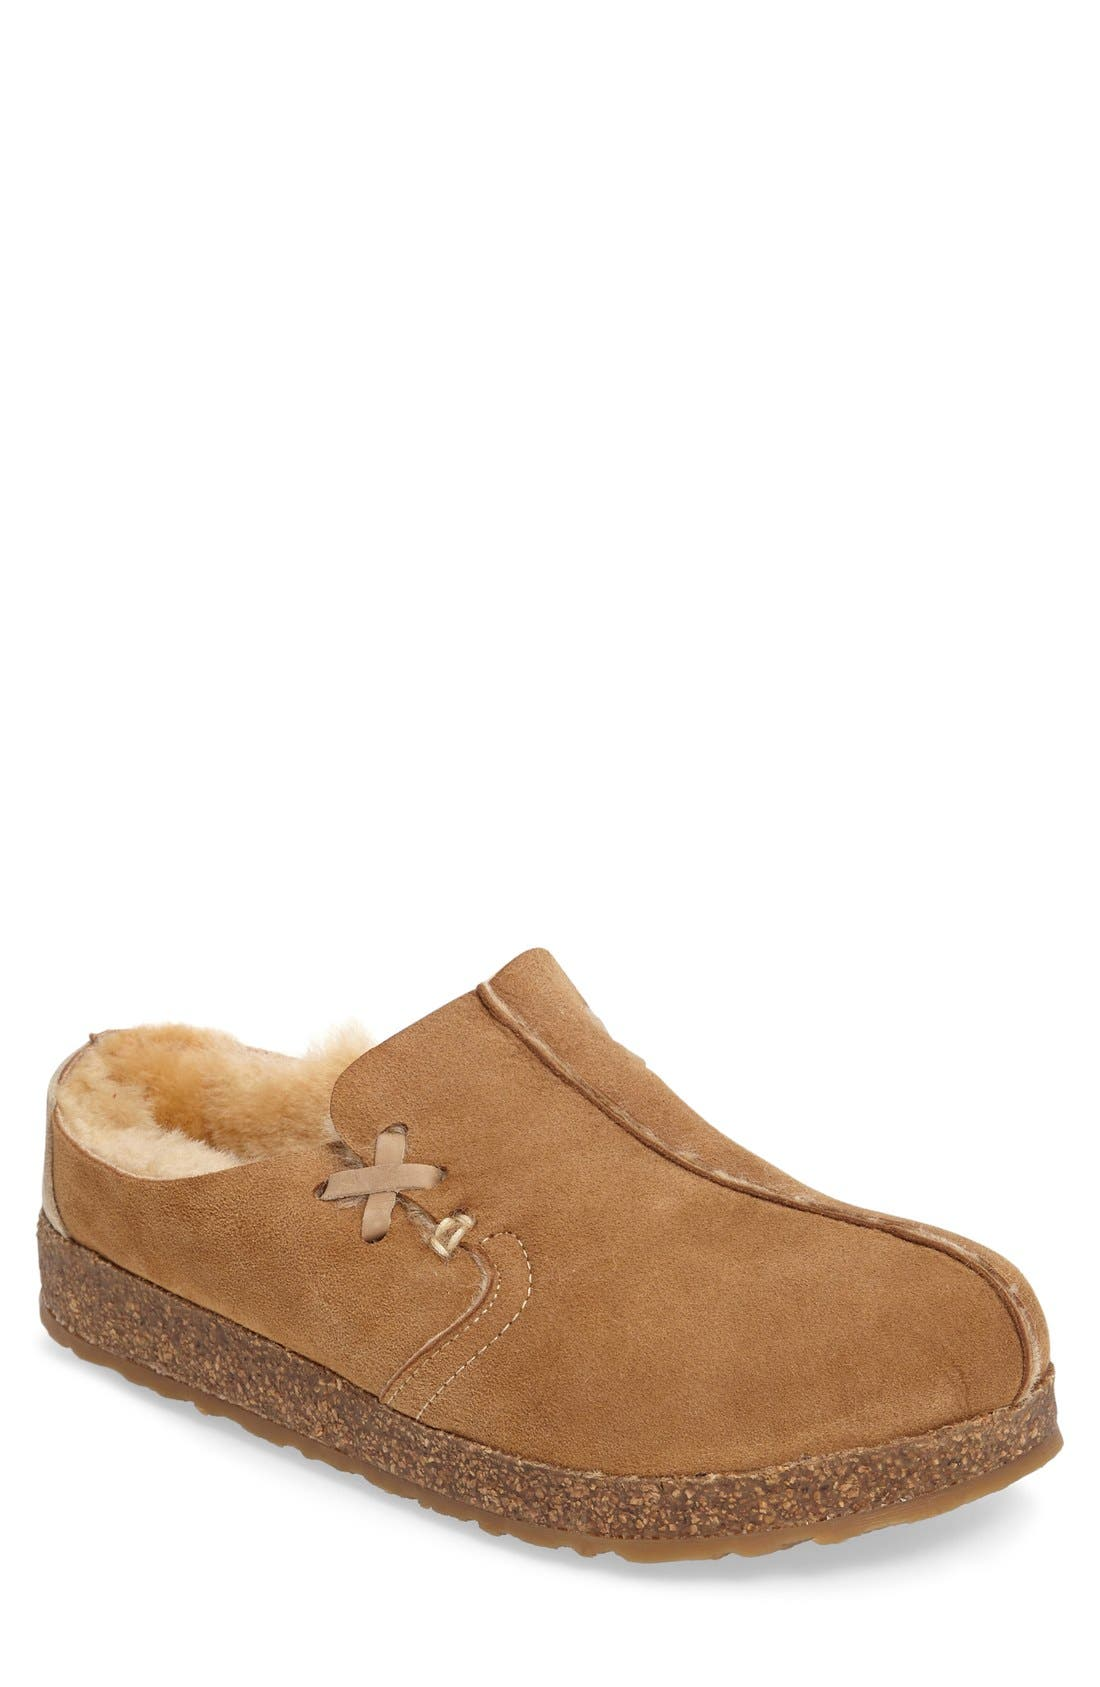 Alternate Image 1 Selected - Haflinger Saskatchewan Slipper (Women)